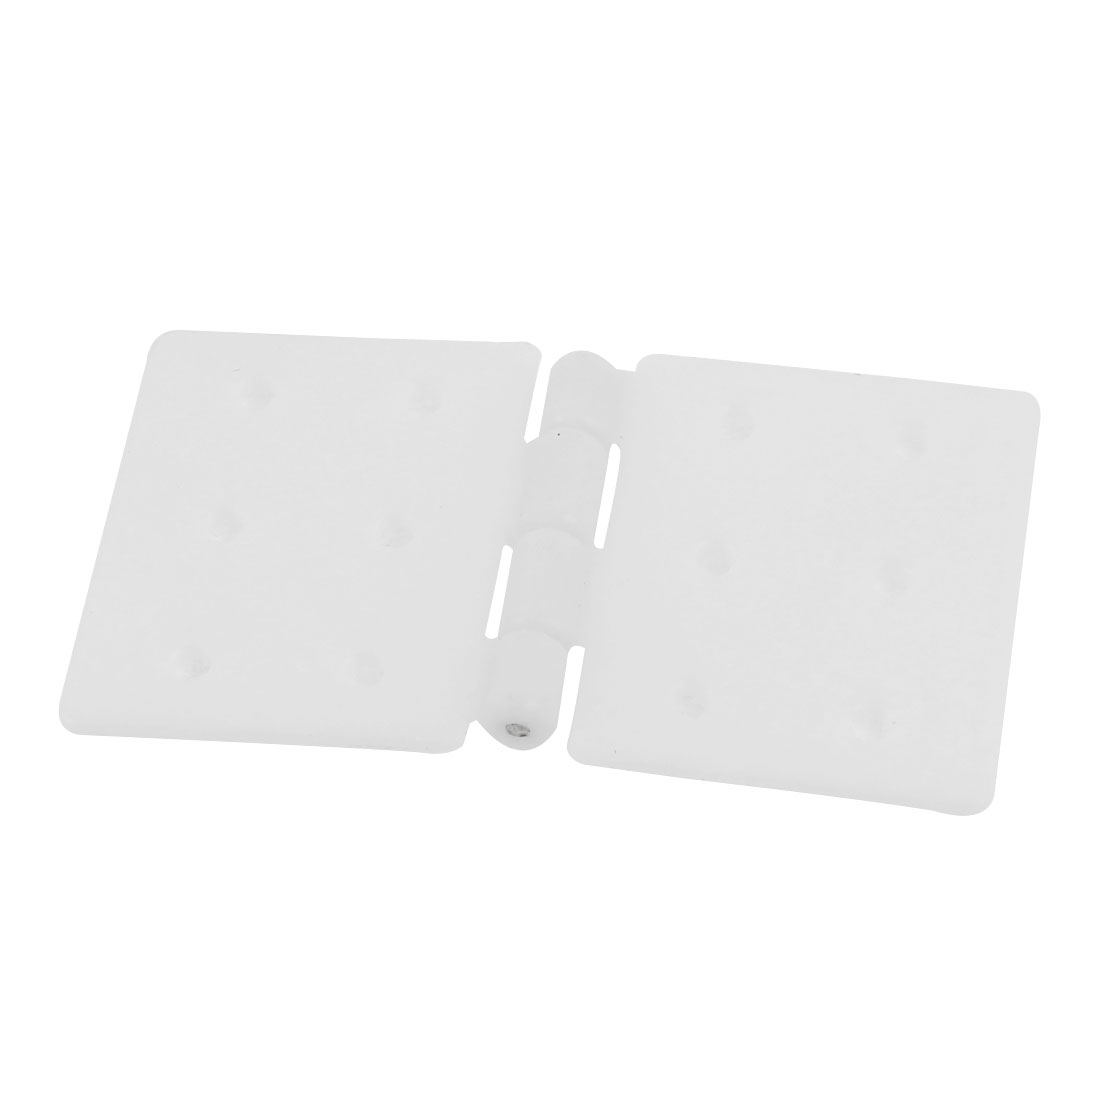 Spare Parts 6 Mount Hole Foldable White Nylon Pinned Hinges 37 x 20mm